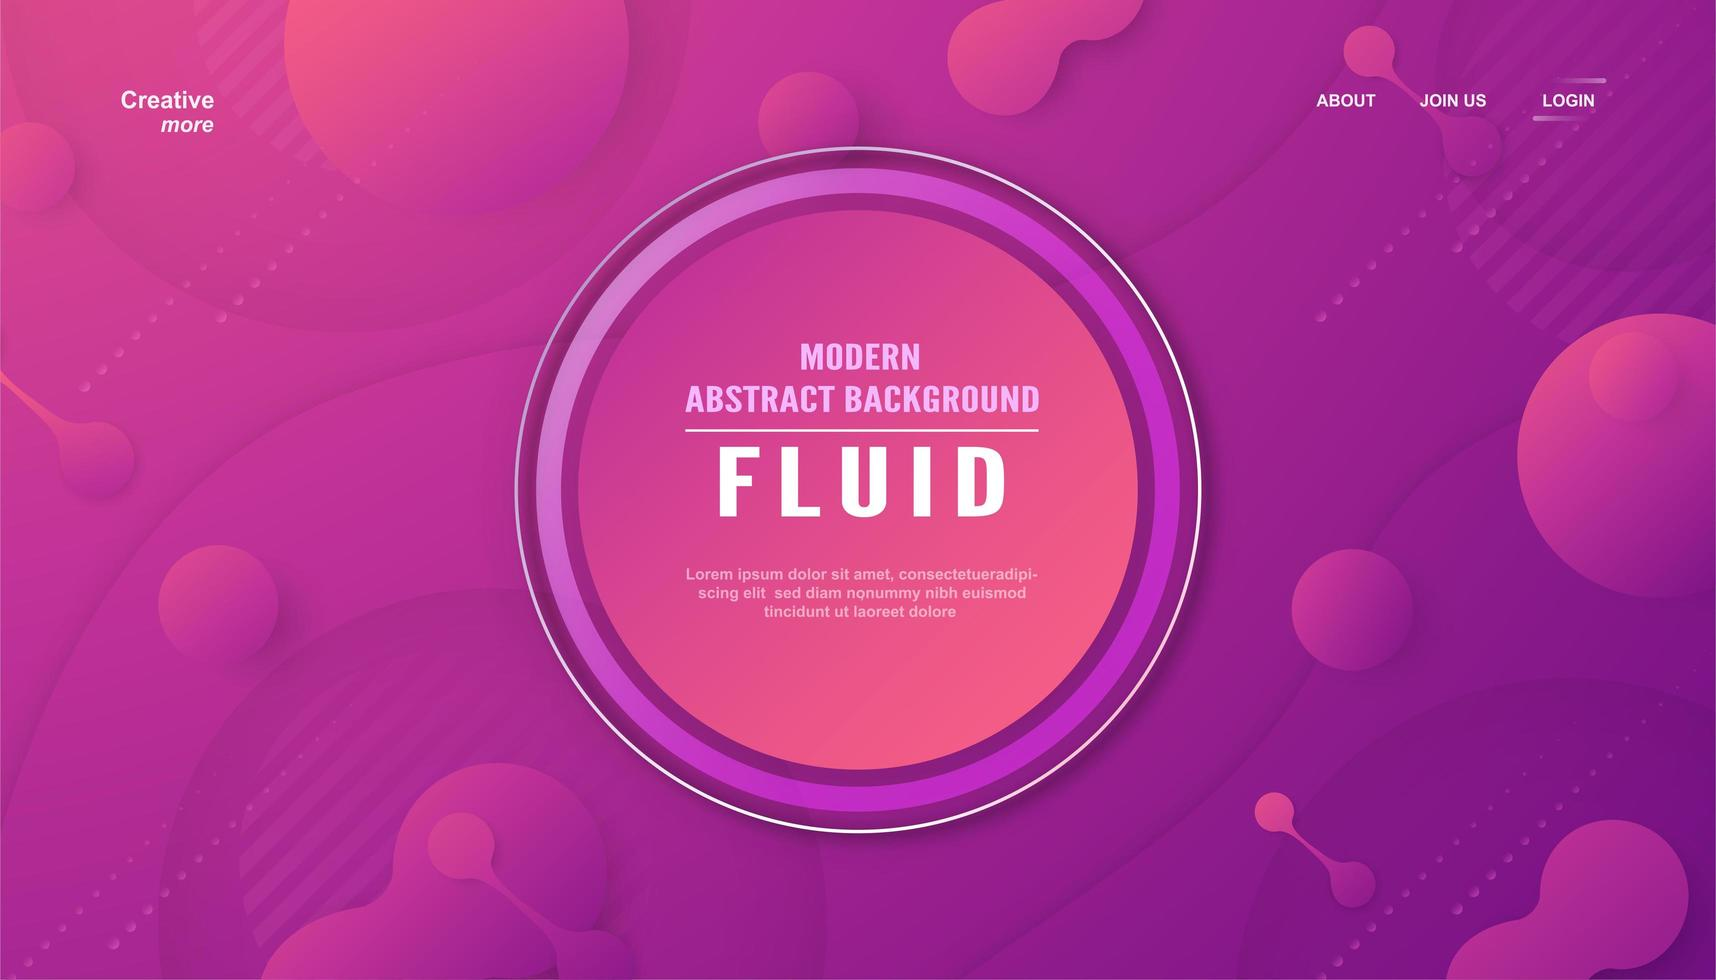 Modern abstract background in fluid style.  vector